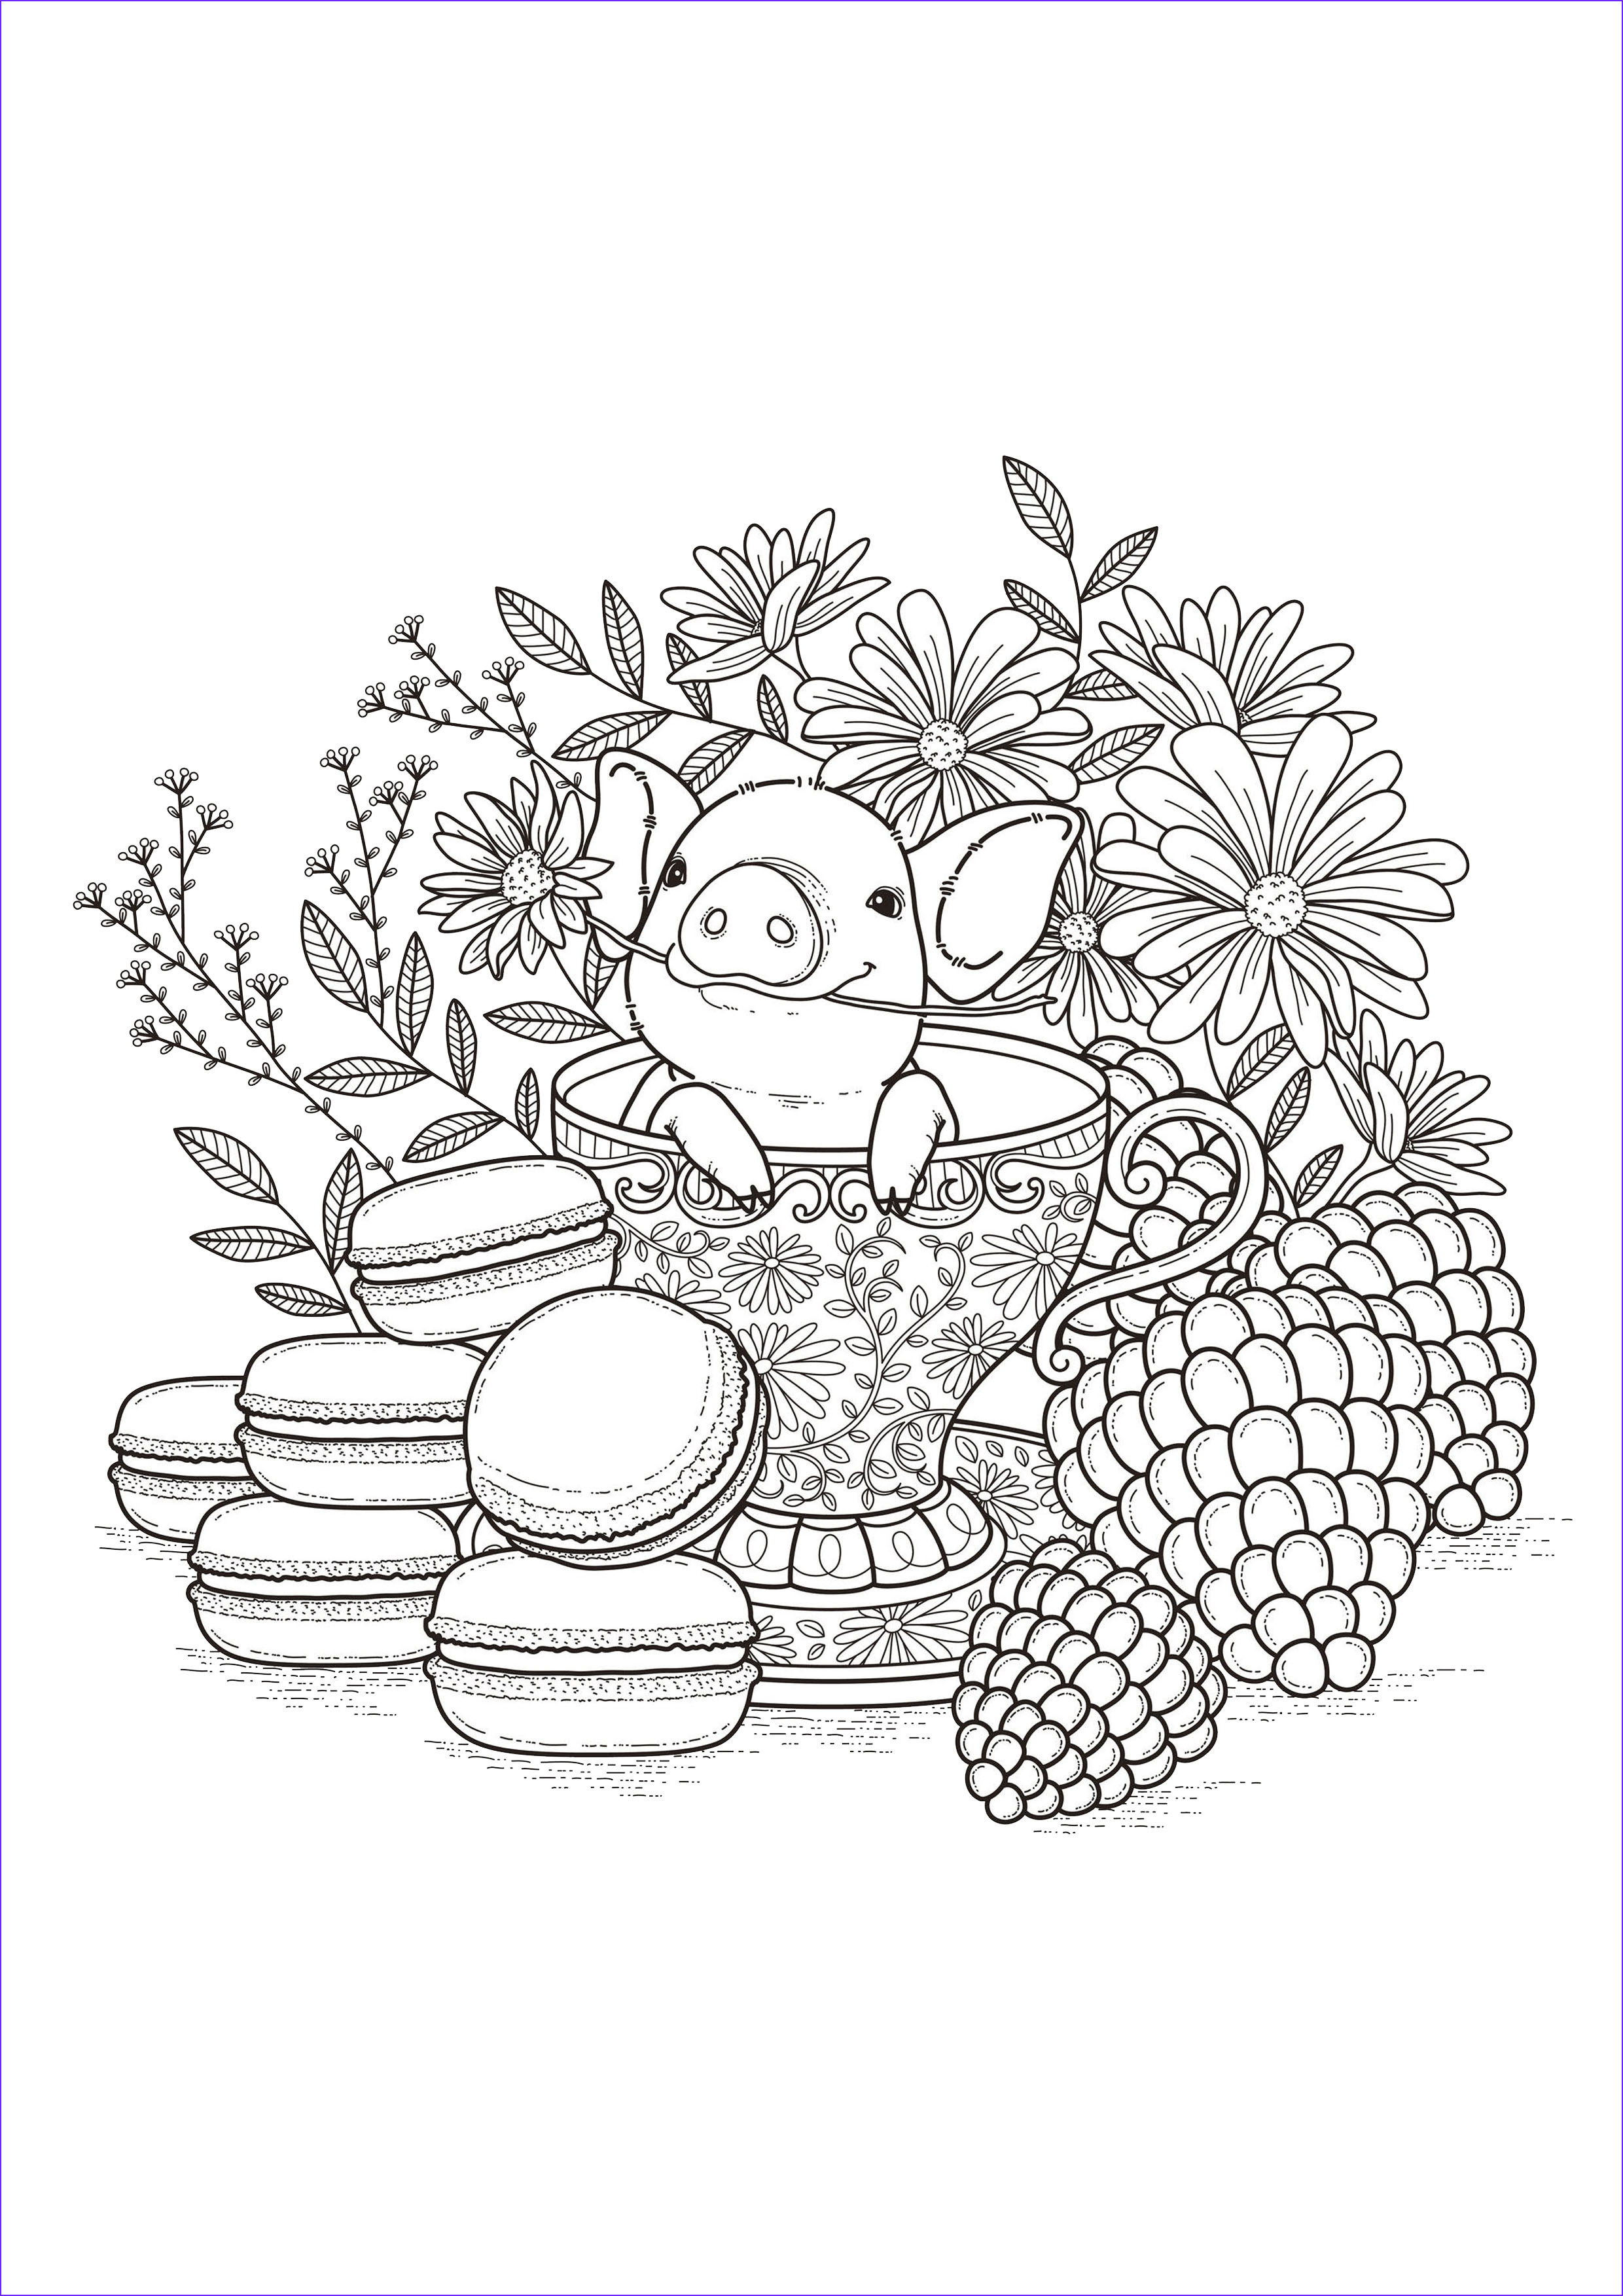 Piggy Coloring Beautiful Collection Food Coloring Pages for Adults